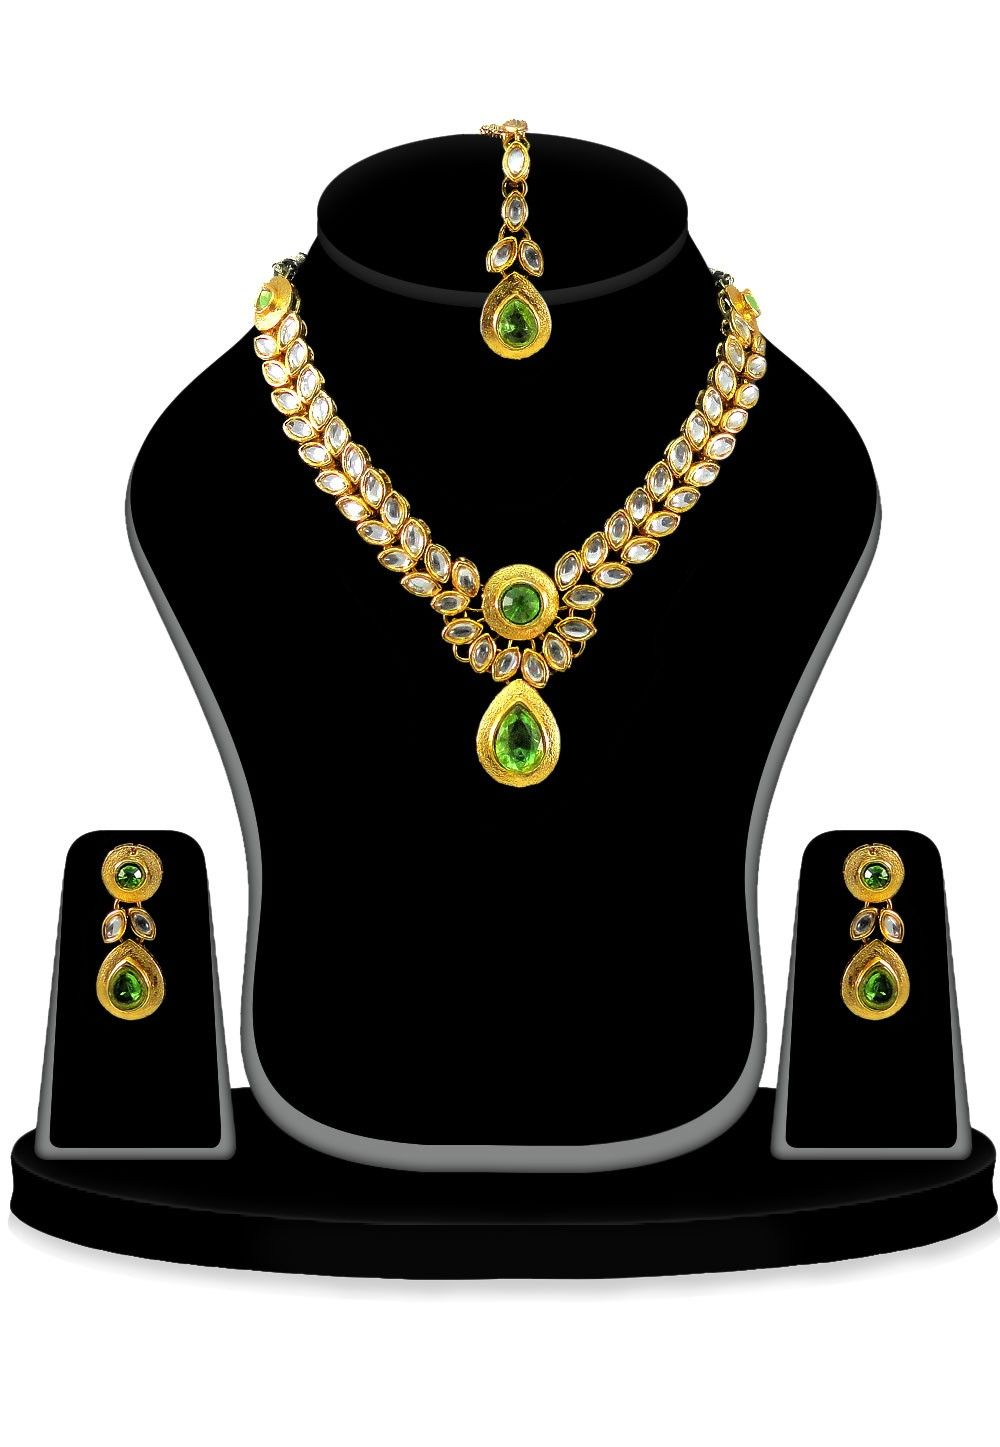 Kundan Necklace Set in White and Green